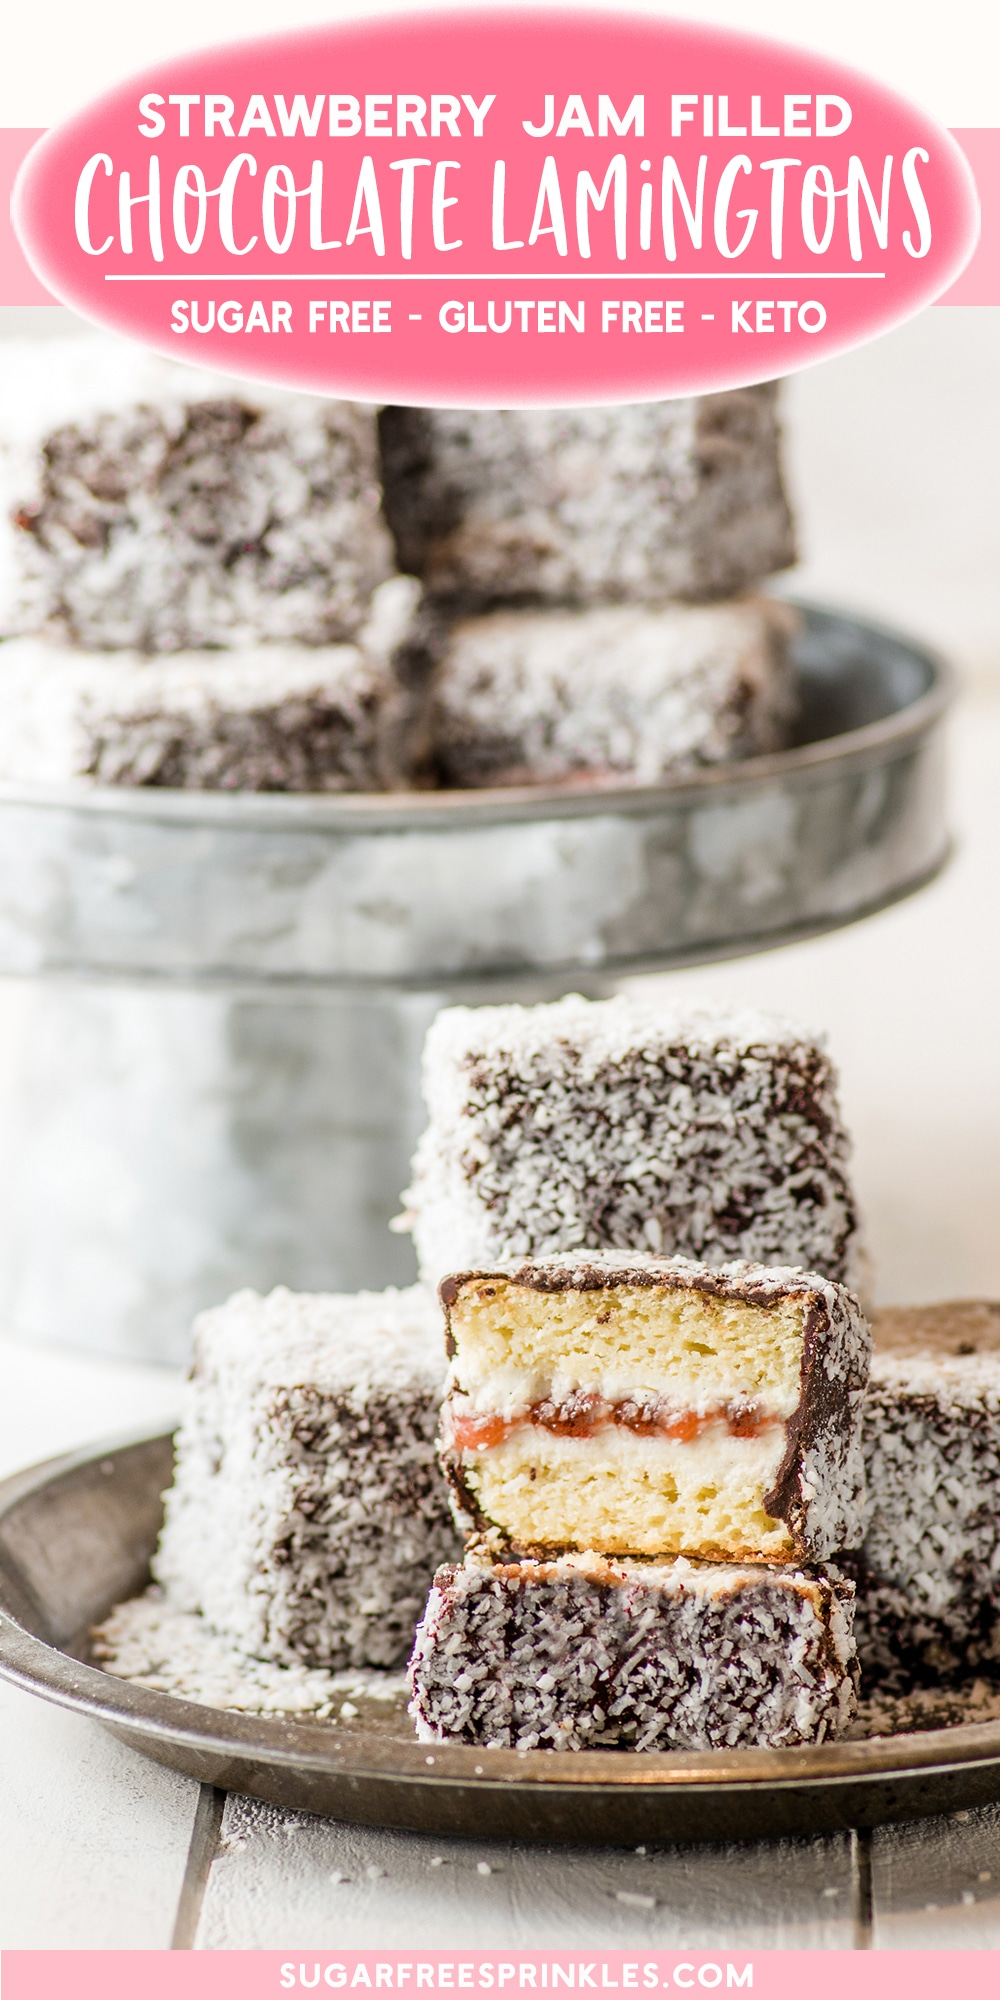 Gluten-free lamingtons recipe with jam filling.  A perfect little treat for anyone watching their sugar.   This gluten-free baking recipe starts with a creamy vanilla cake base layered with fresh strawberry jam and coated with chocolate and coconut.   A great little low carb baking recipe for anyone wanting a special treat that won\'t break the diet.